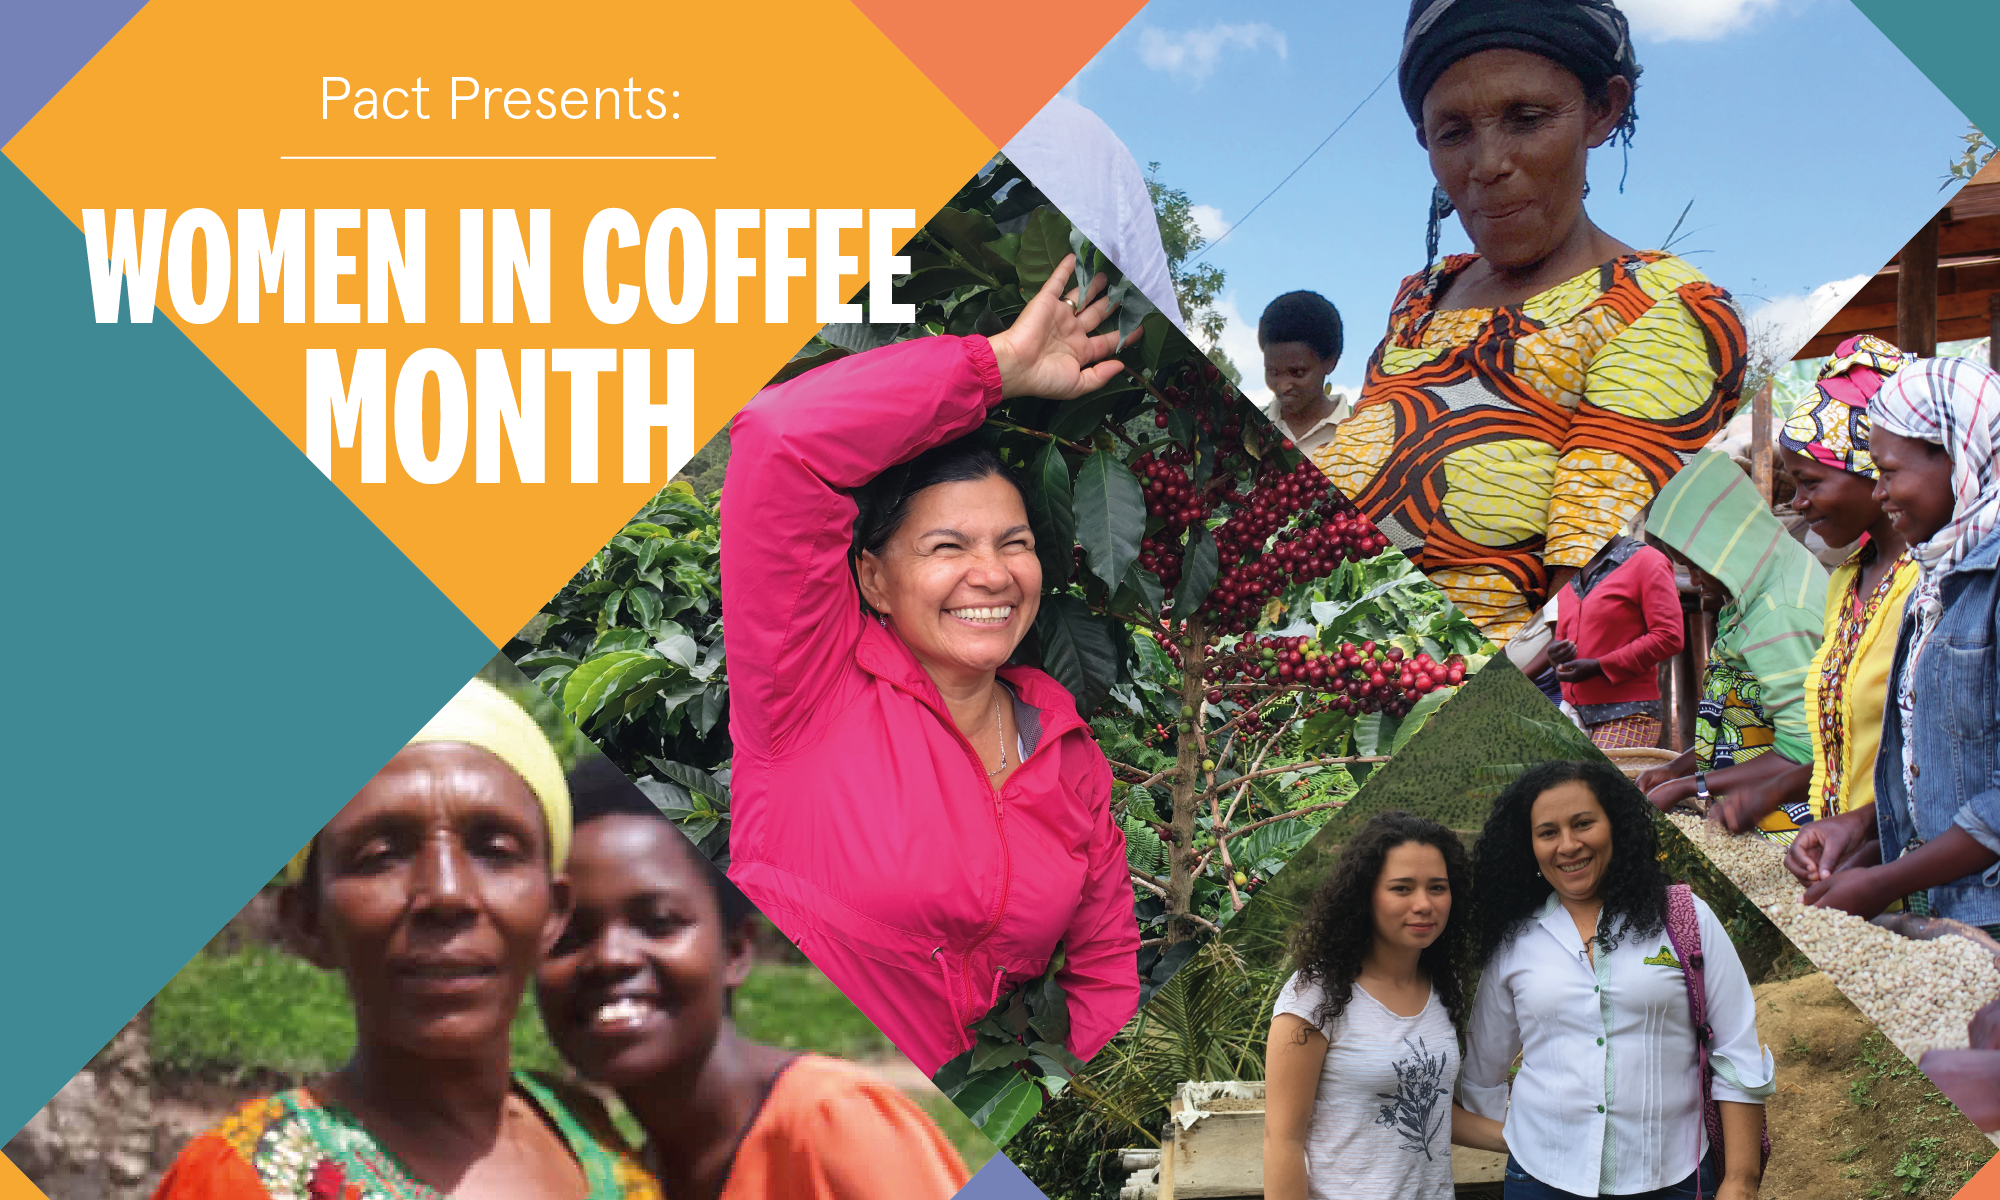 A Woman in Coffee month photo